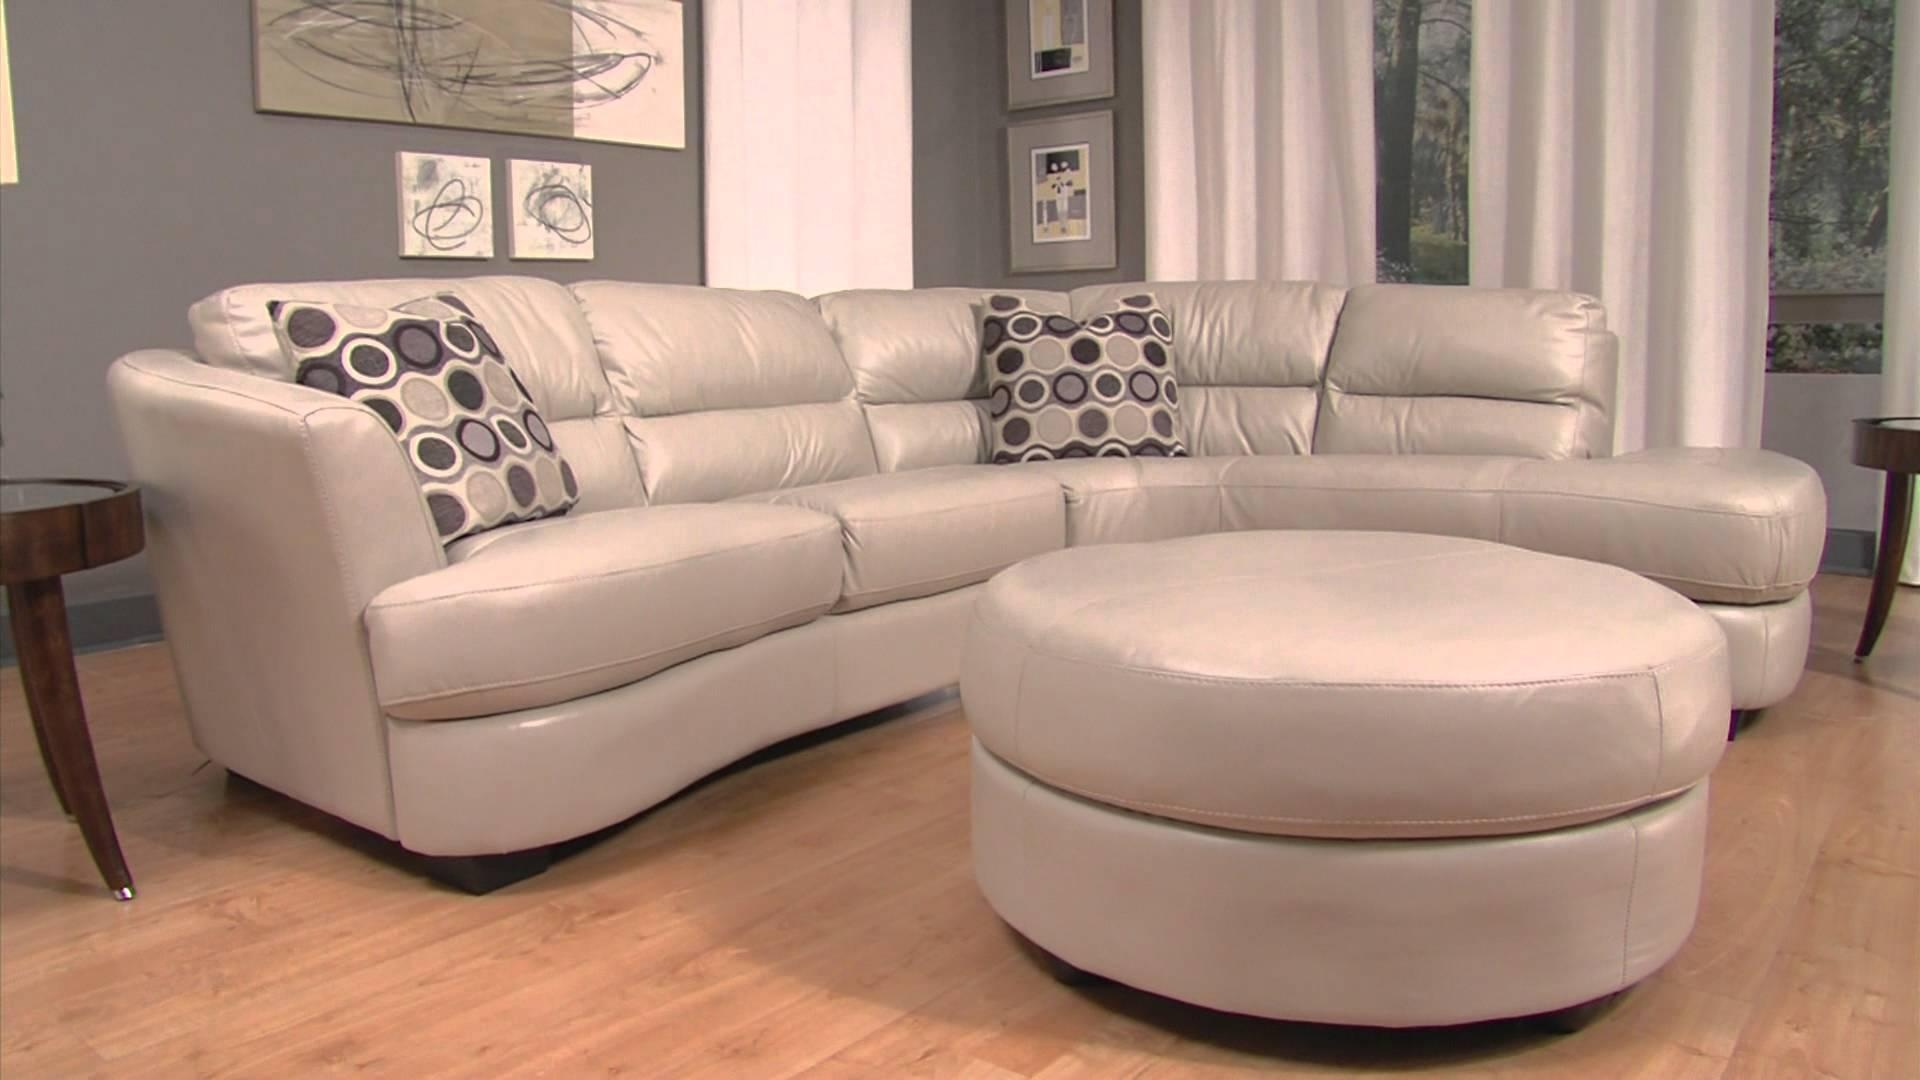 Berkline Andlynn Sofa Set Costco 3 Berkline Andlynn Sofa Set Intended For Berkline Sectional Sofas (Image 2 of 20)